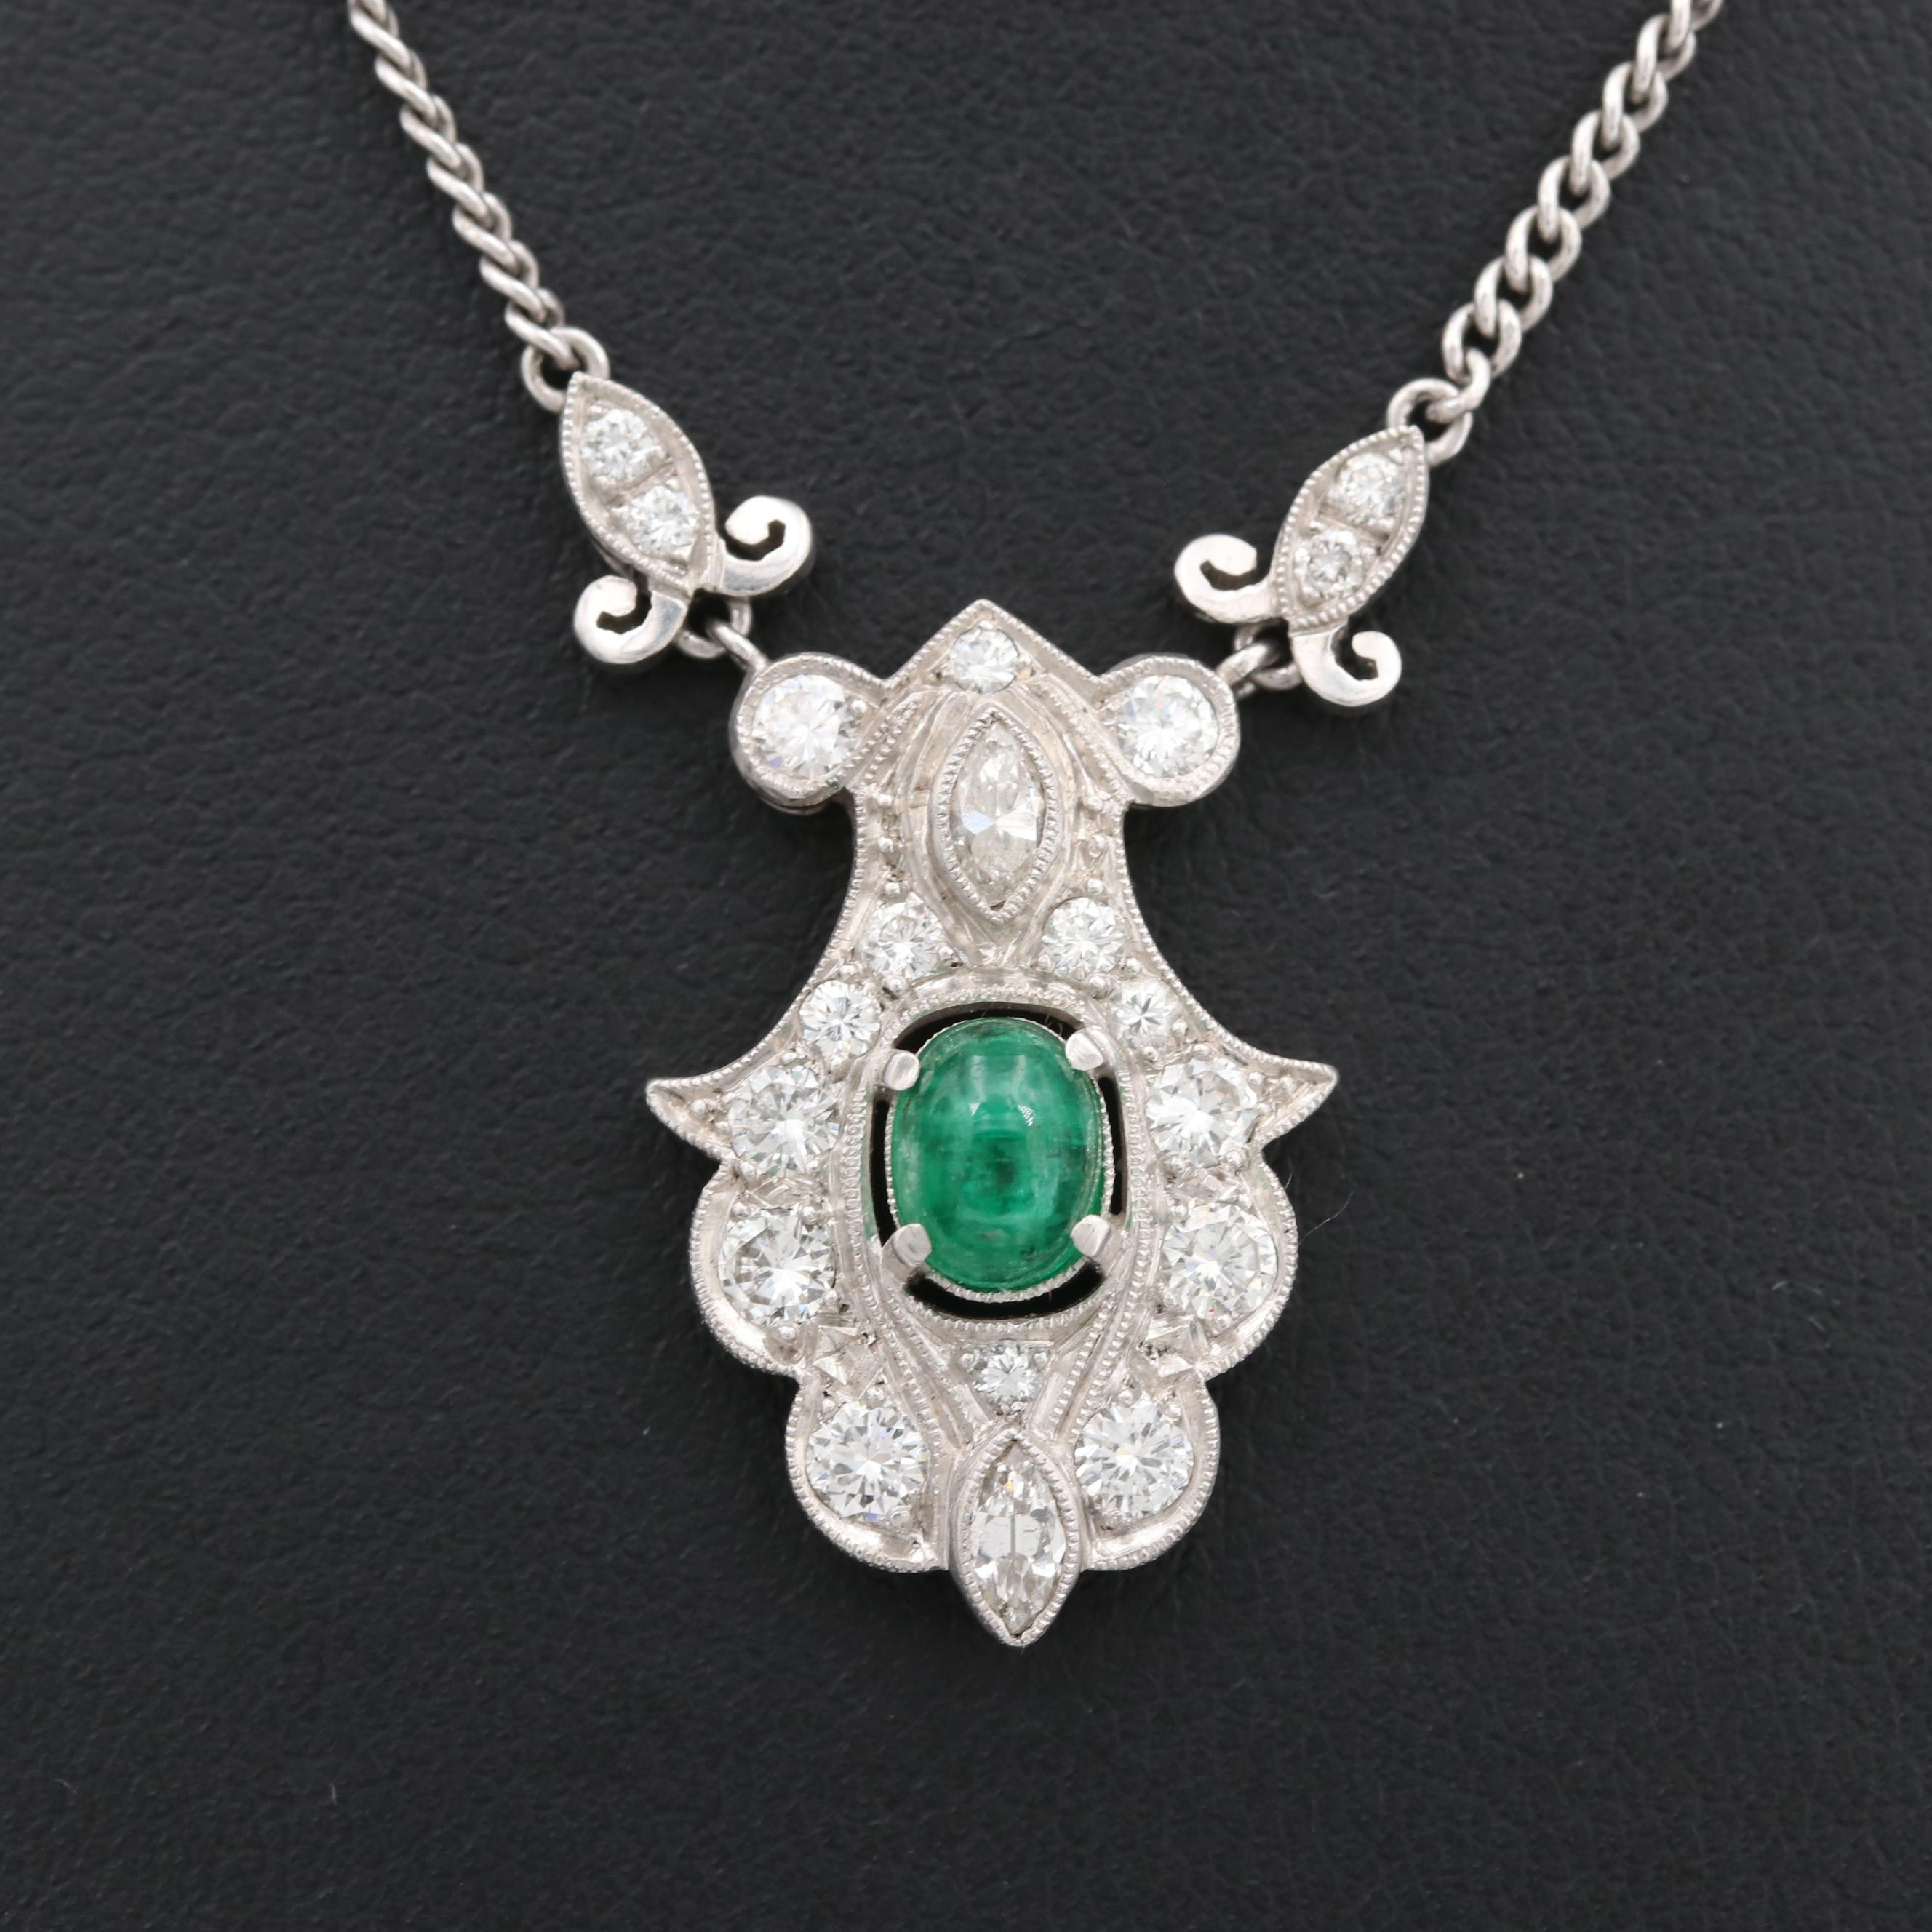 Art Deco Platinum Emerald and Diamond Pendant on 10K White Gold Chain